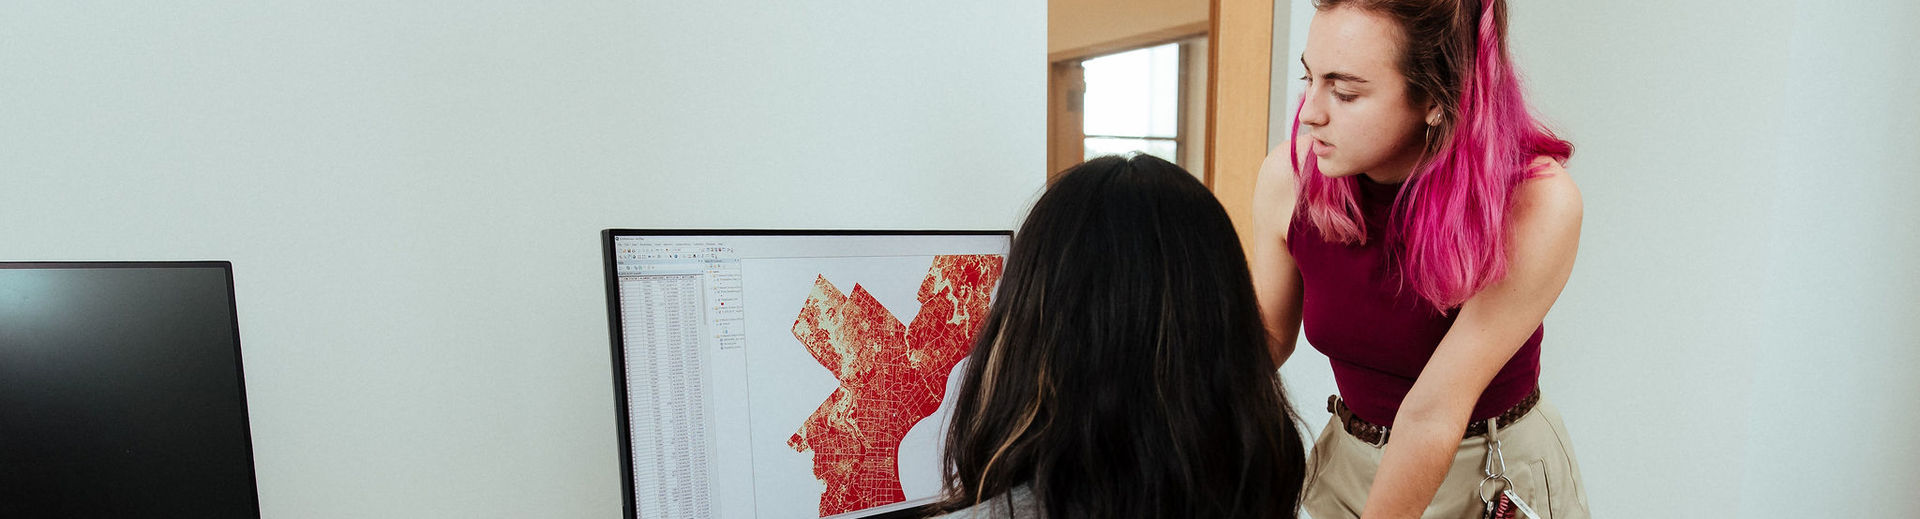 Two students work with GIS software on a computer.